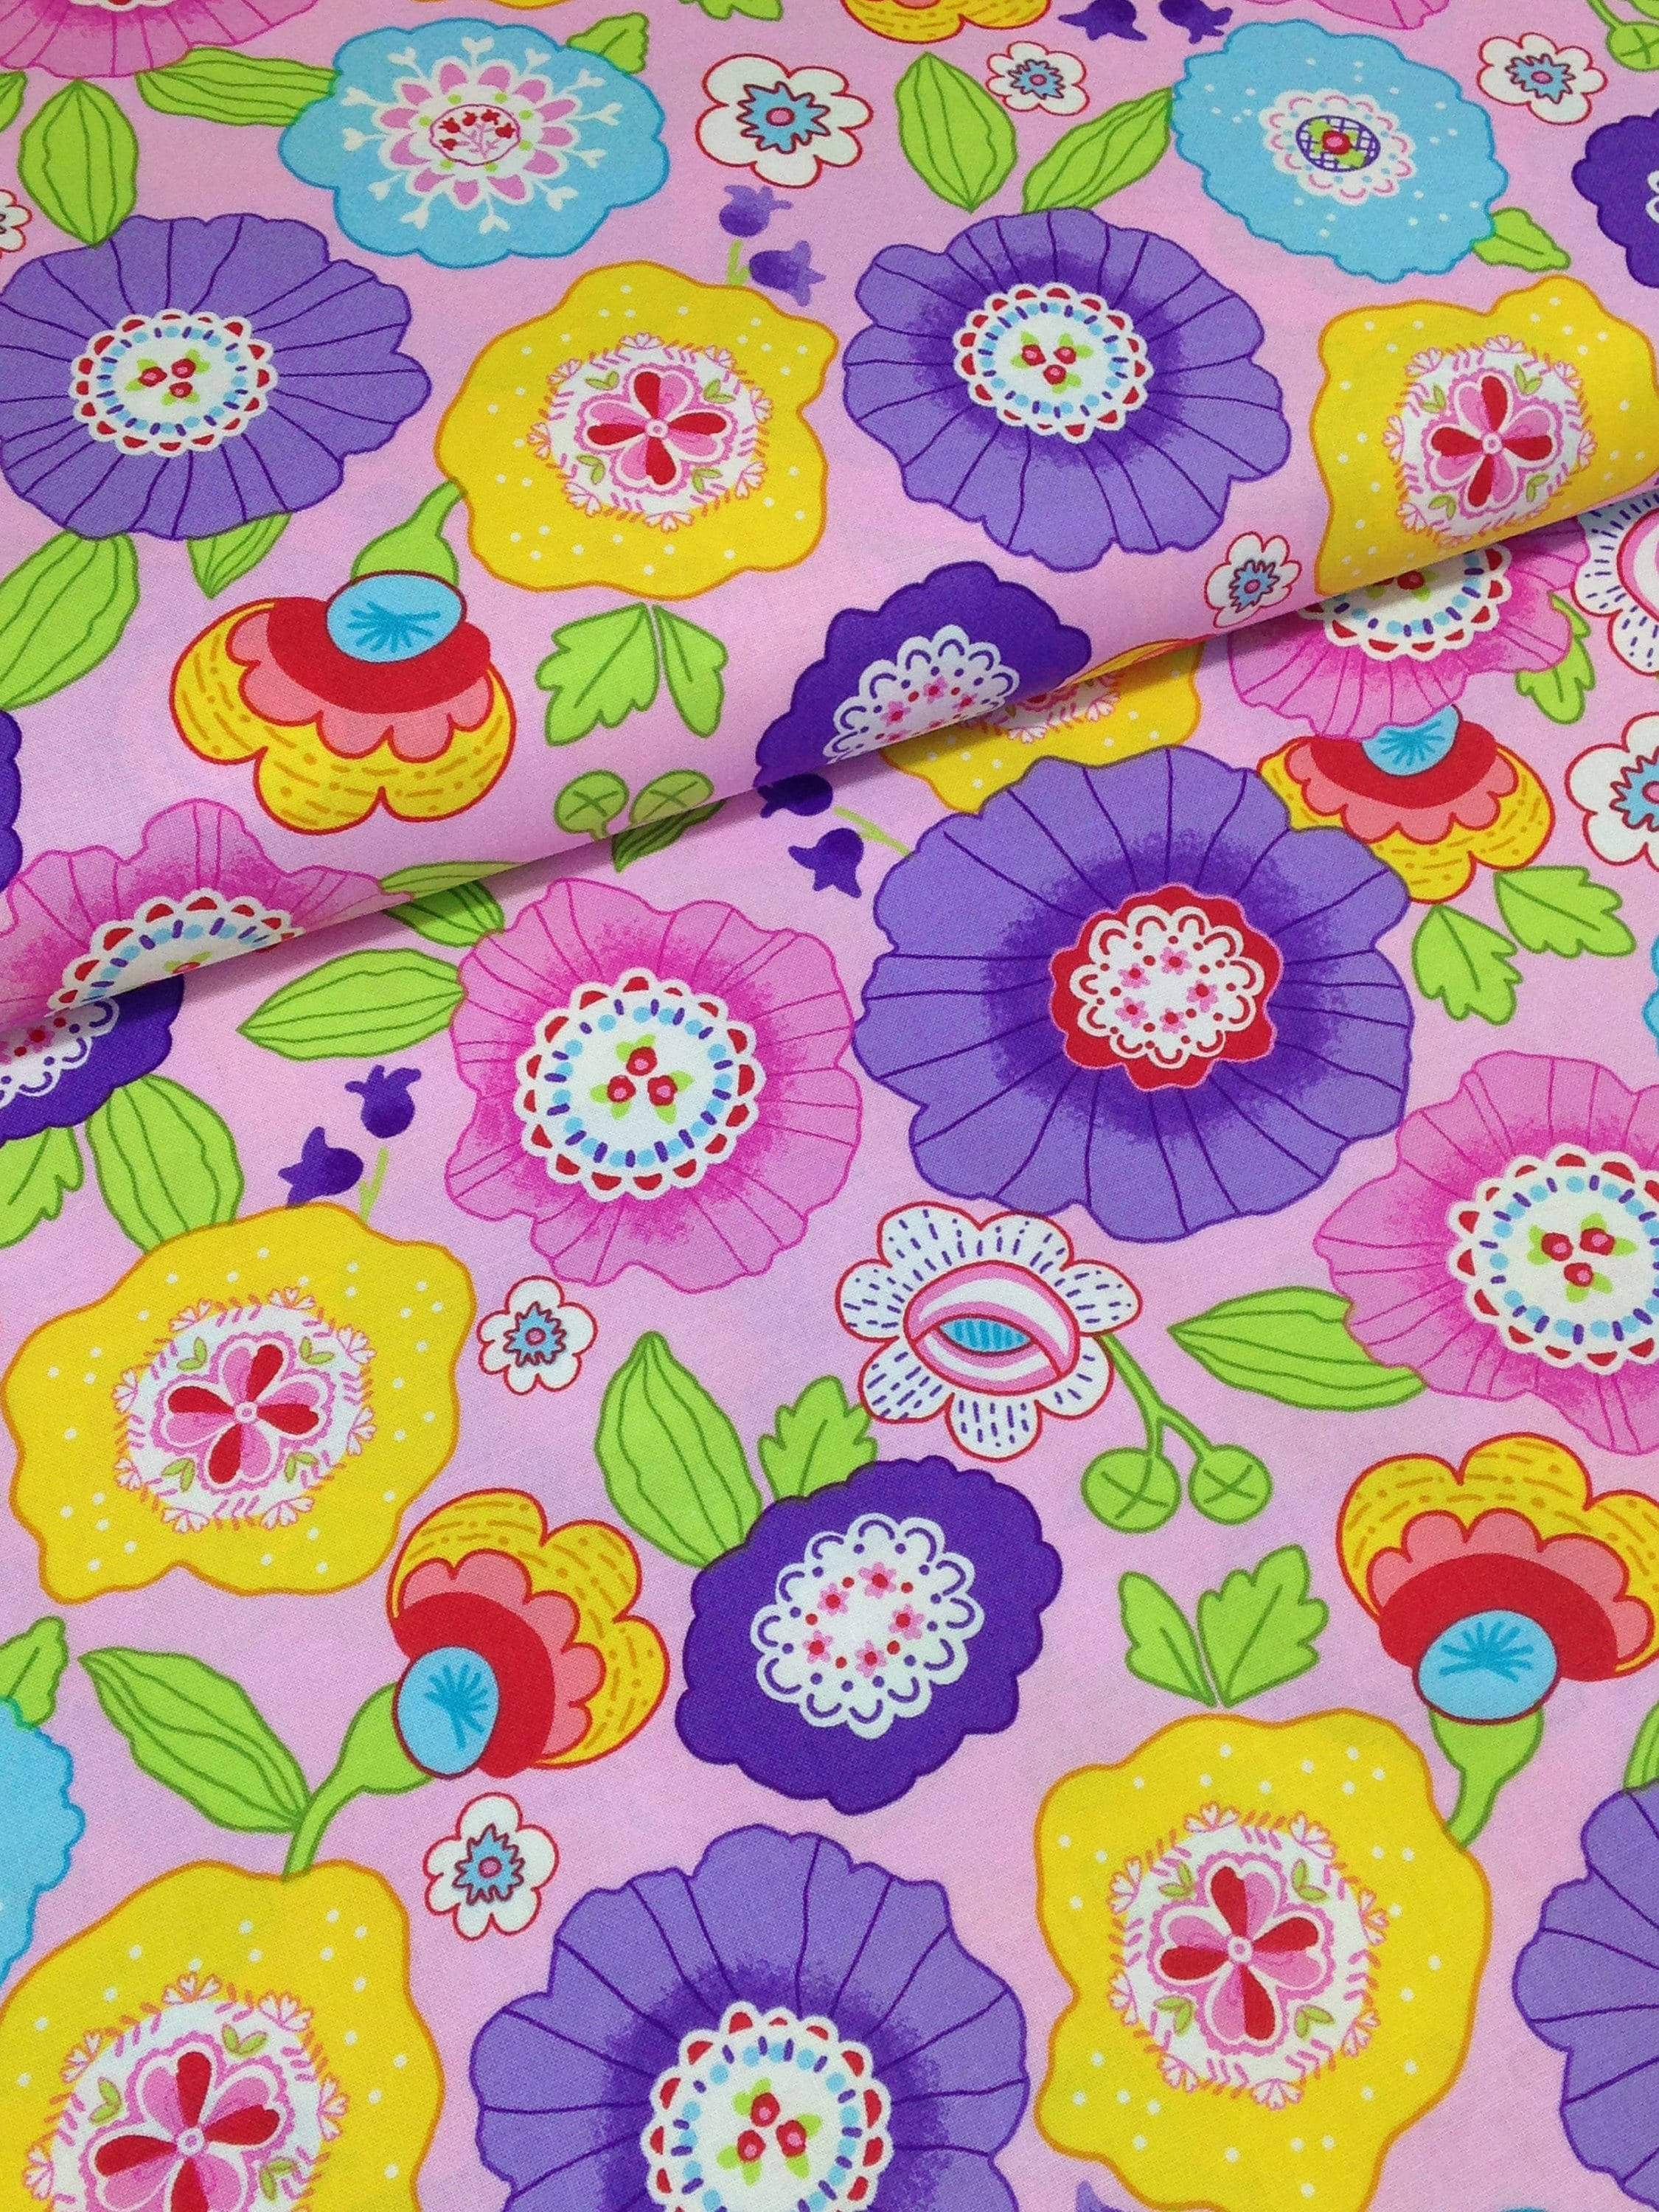 Flower Garden Fabric Floral Cotton Colorful Spring Time Etsy